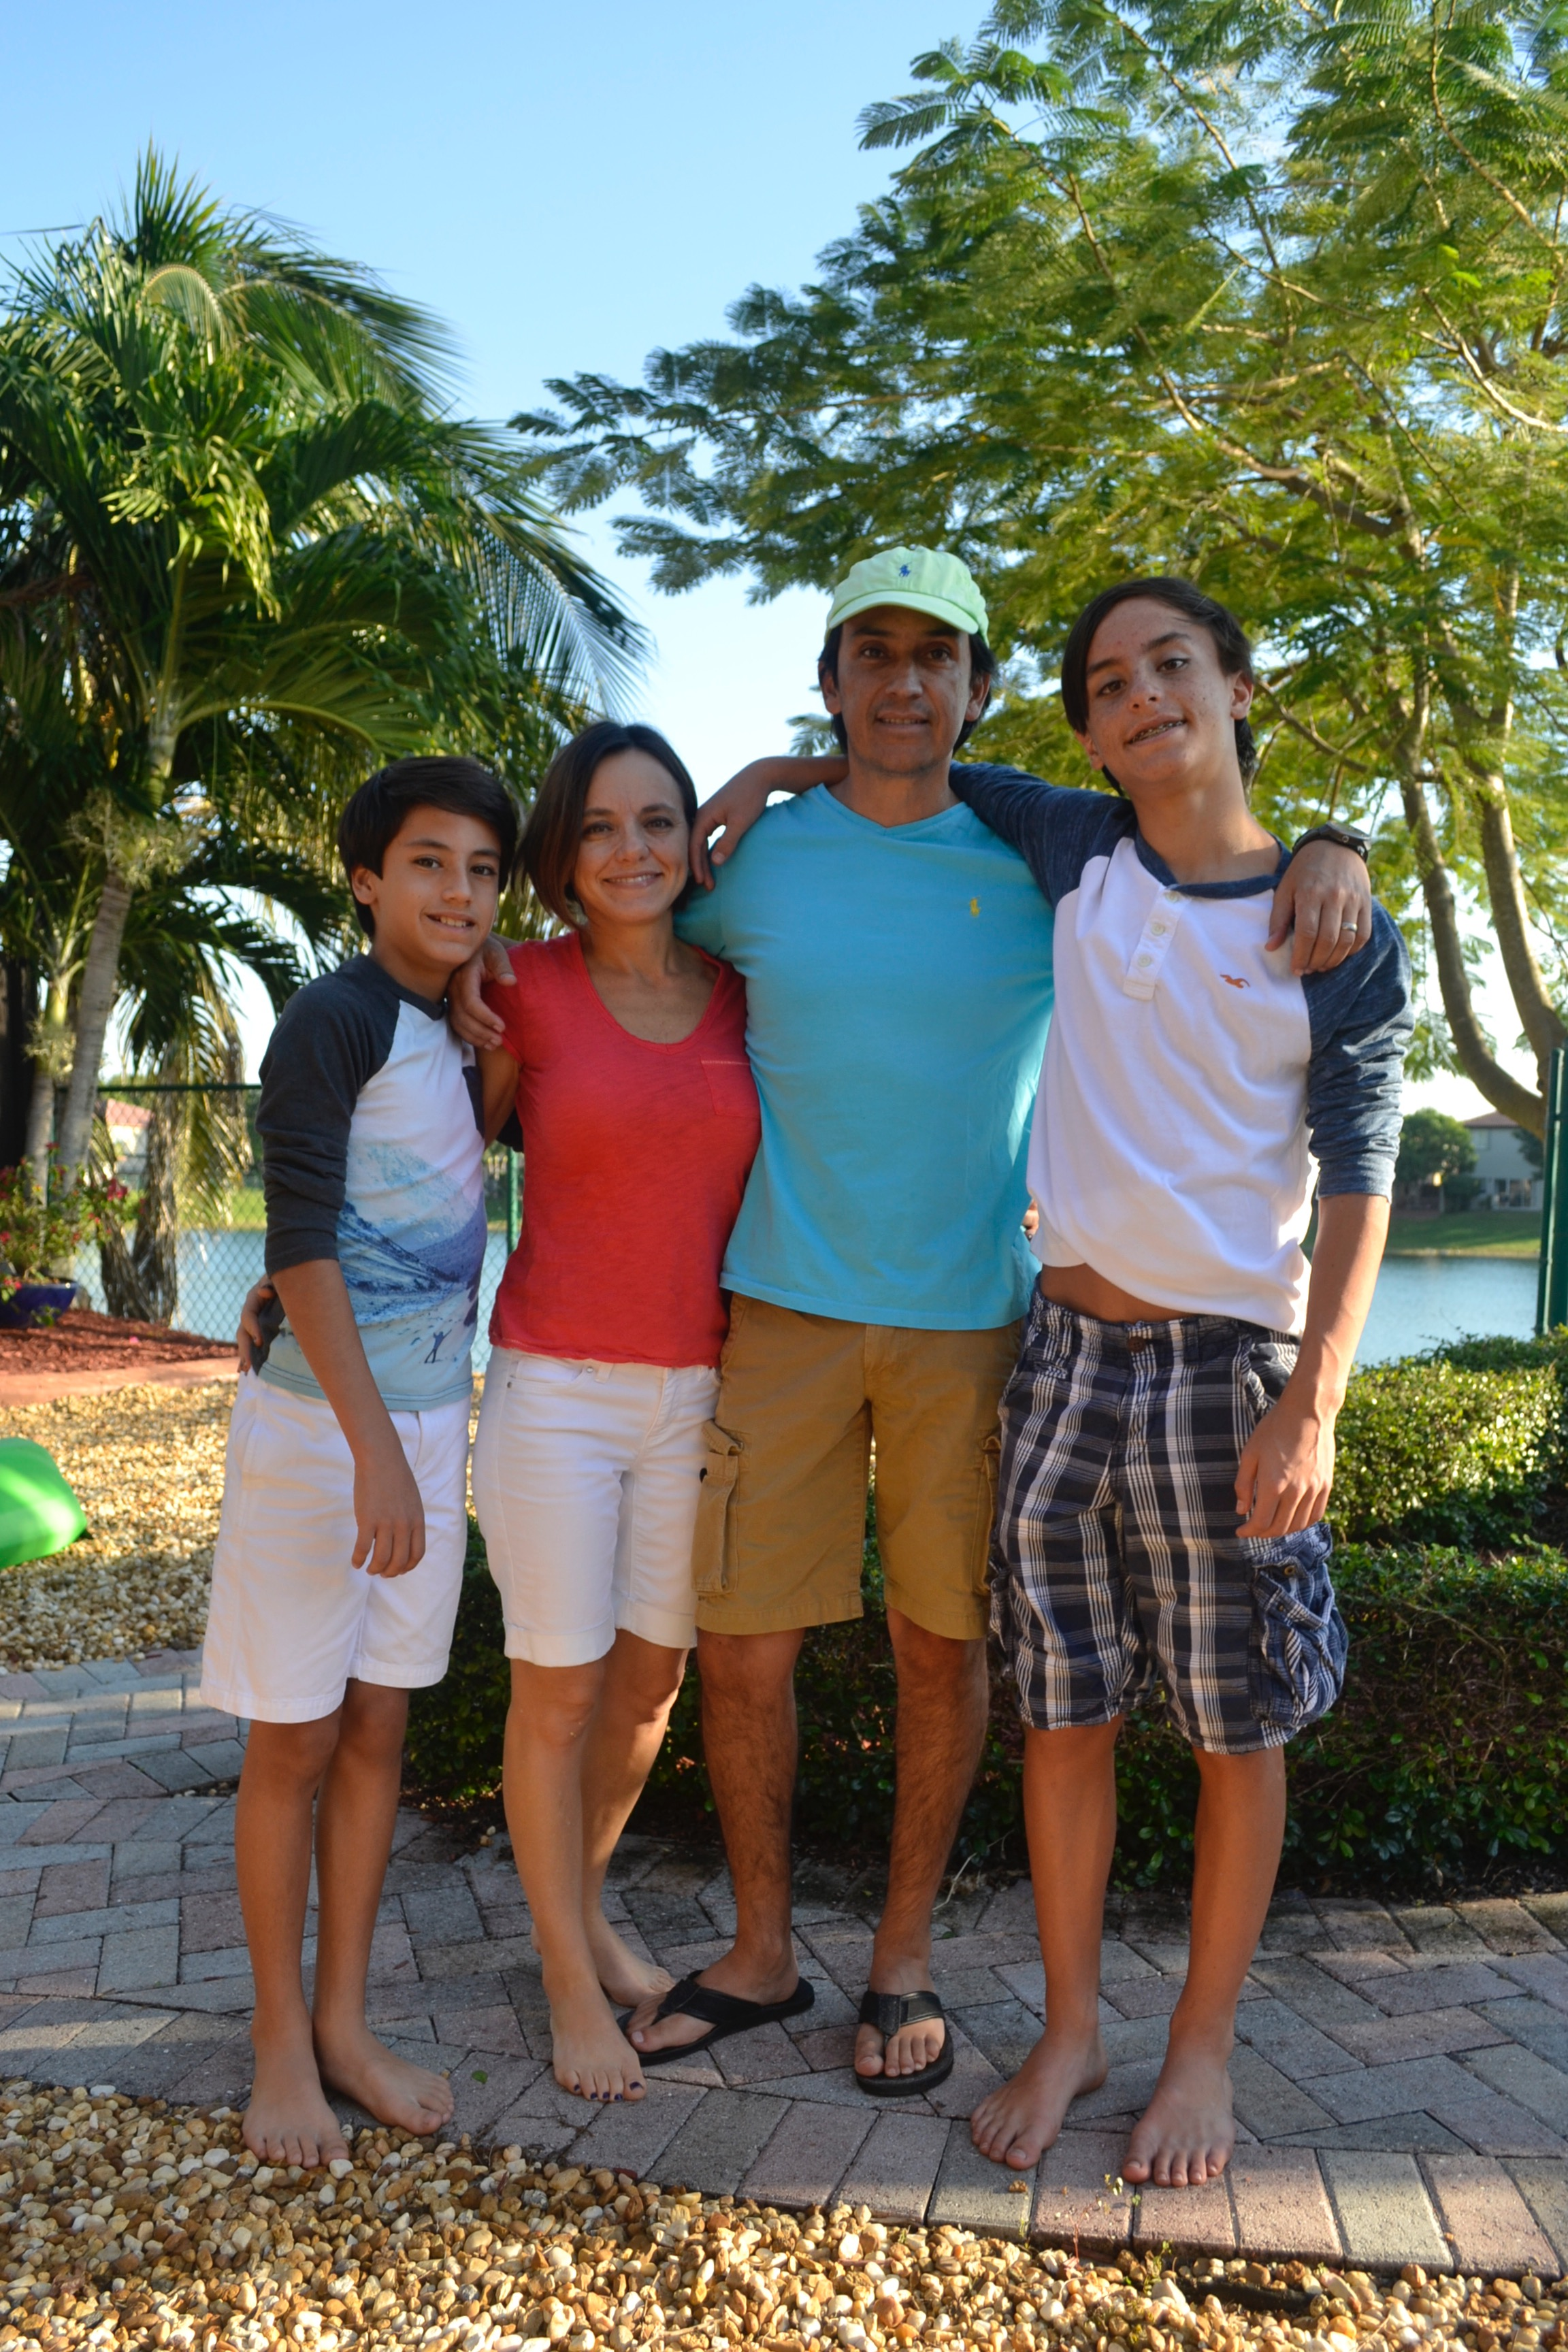 The Trujillo family–Matias, Lina, Luis, and Lucas (left to right)